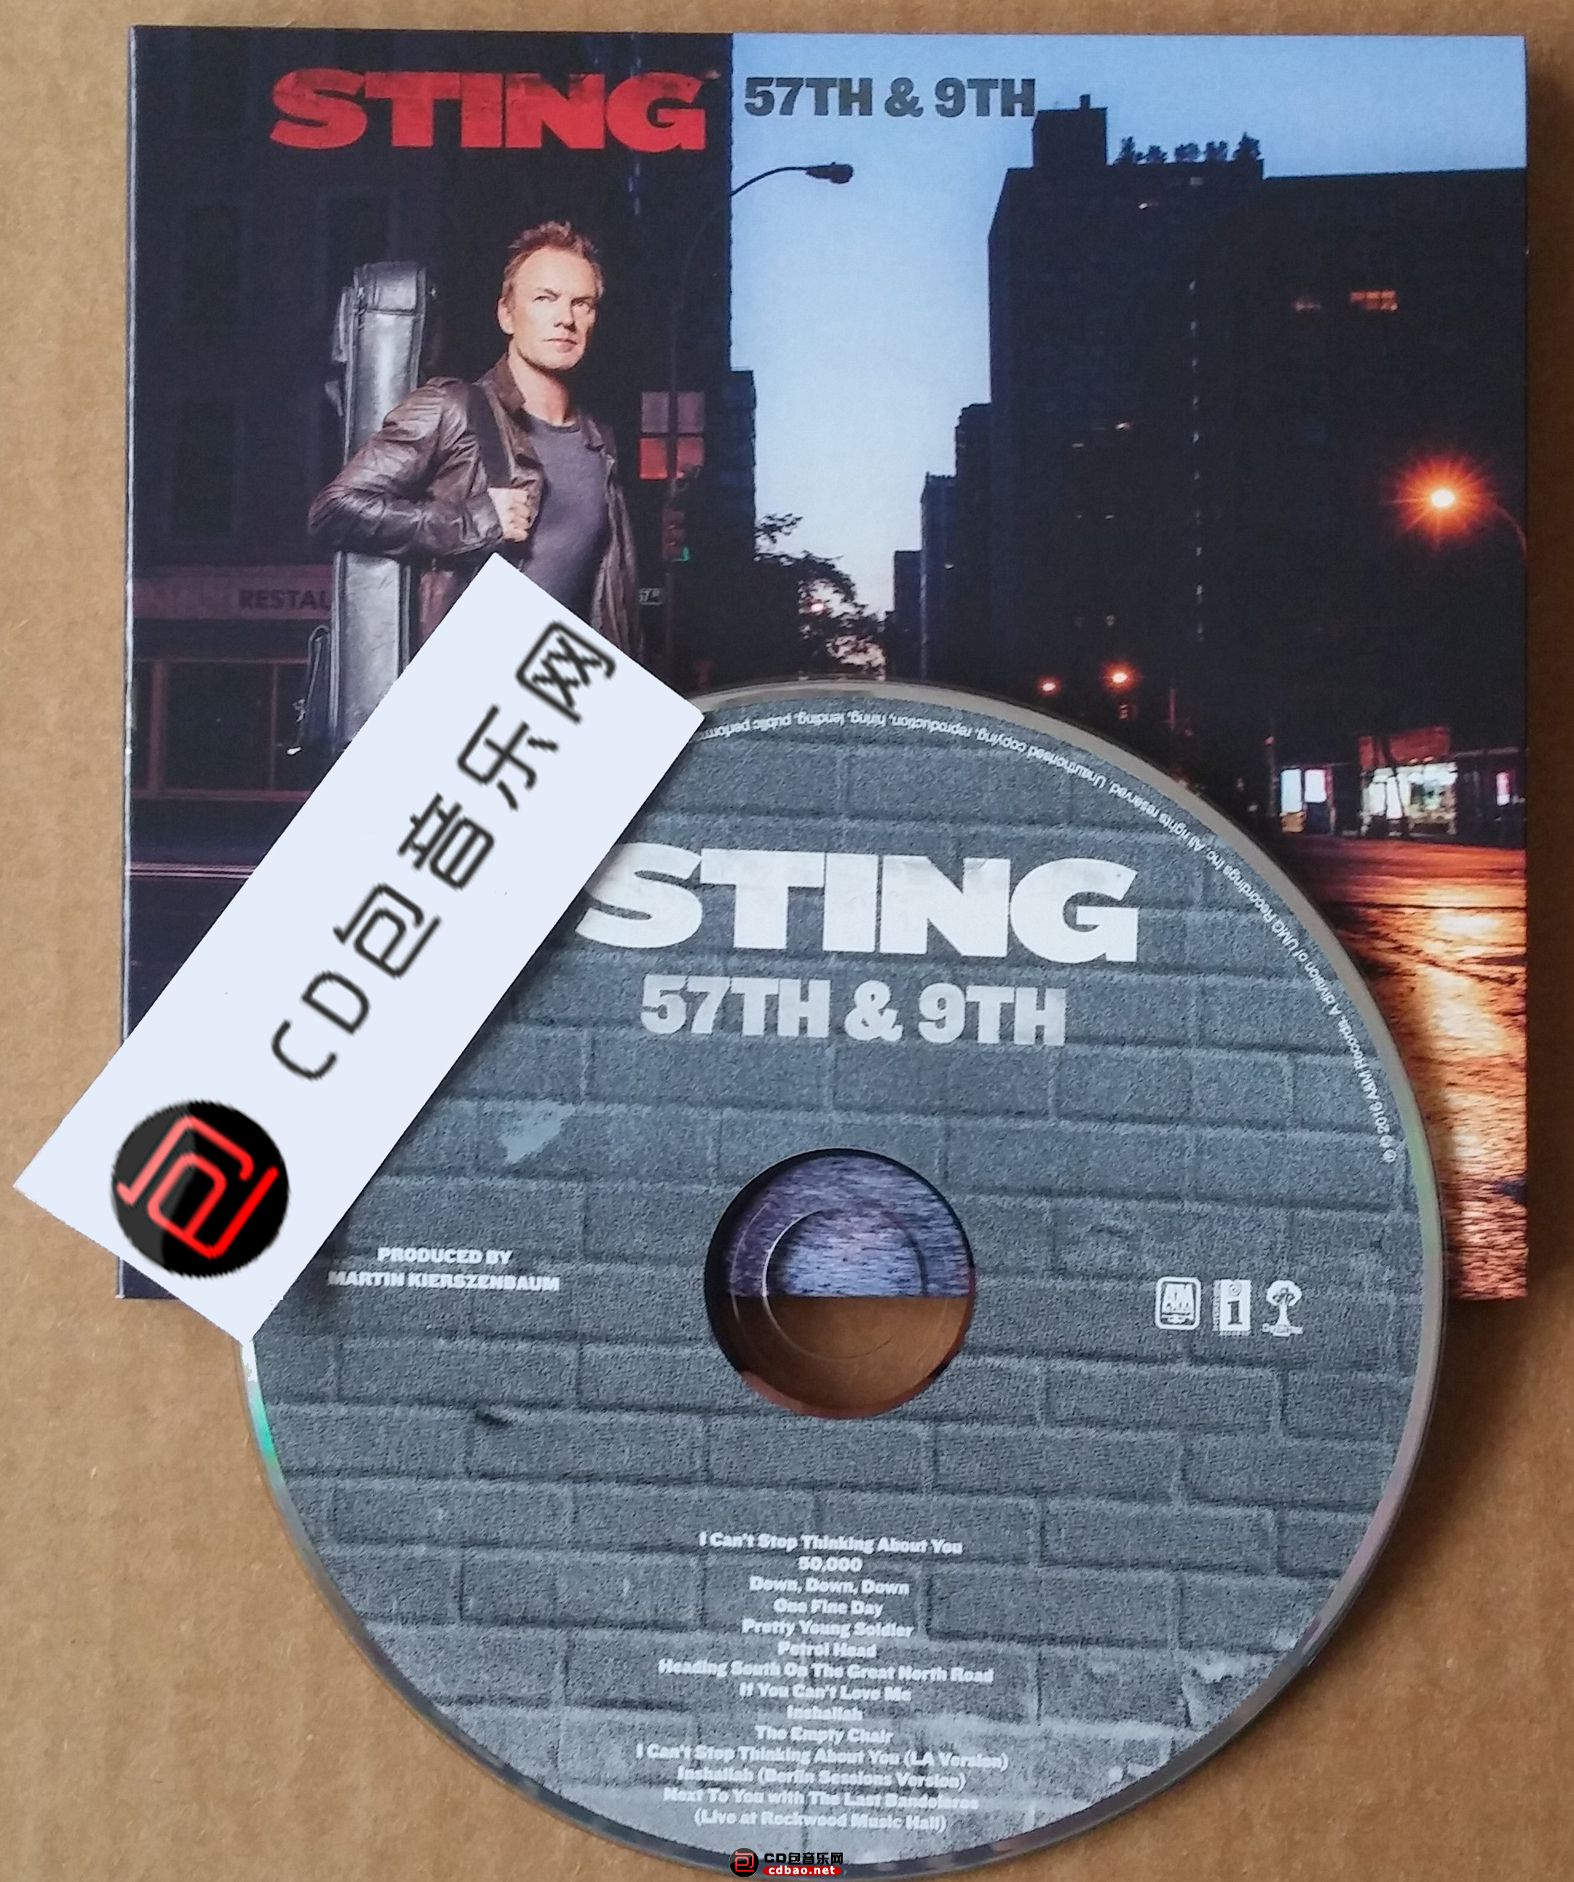 00-sting-57th_and_9th-deluxe_edition-cd-flac-2016-proof.jpg